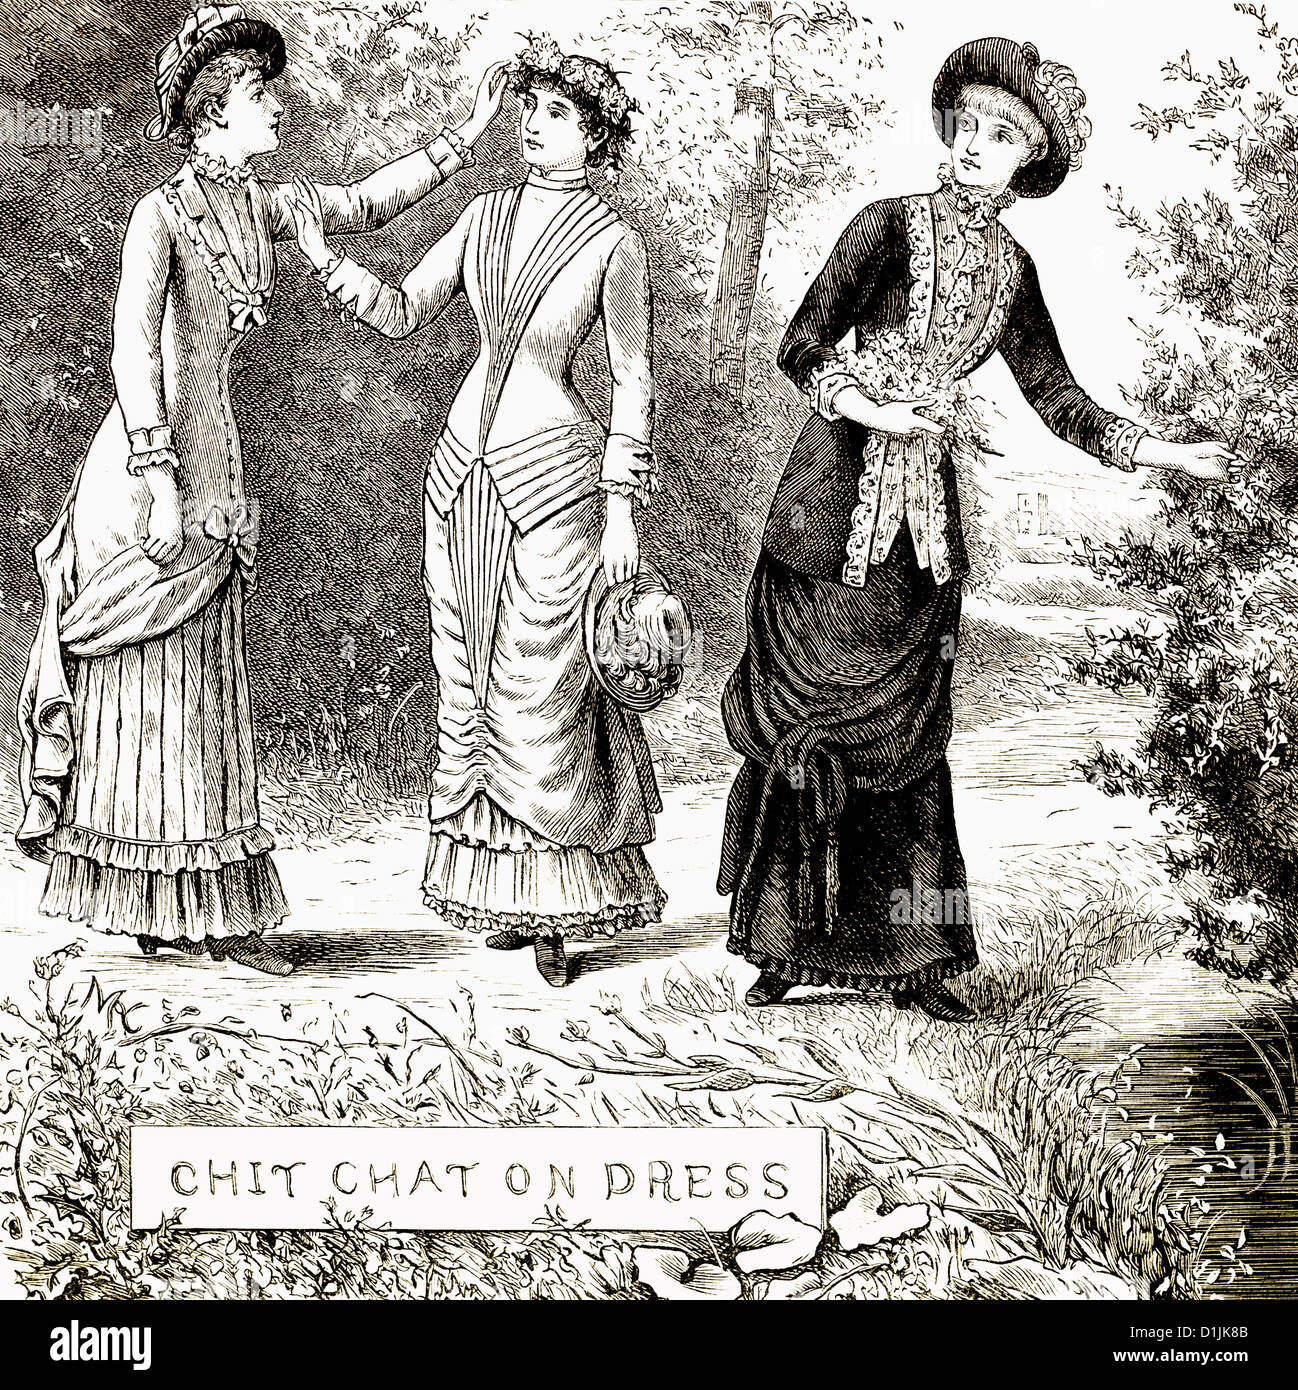 Historical drawing from England, 19th century, women's fashion around 1881 - Stock Image